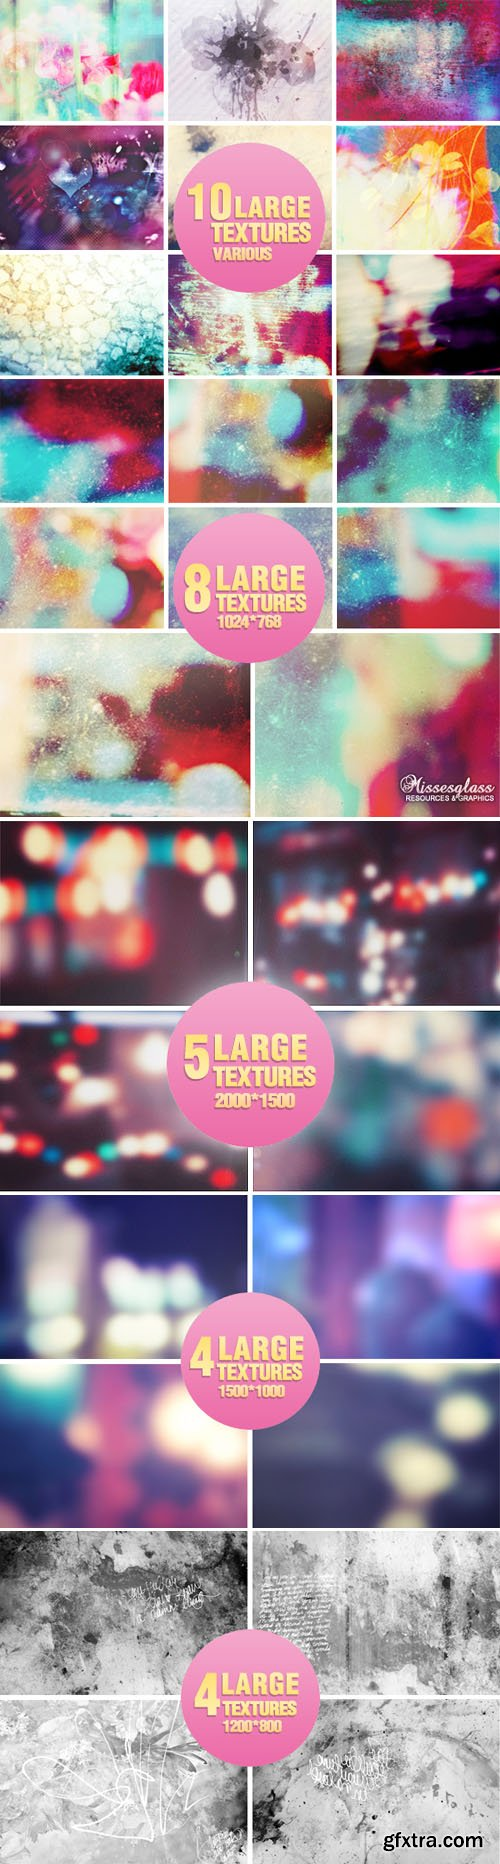 15 Awesome Texture Pack Collection